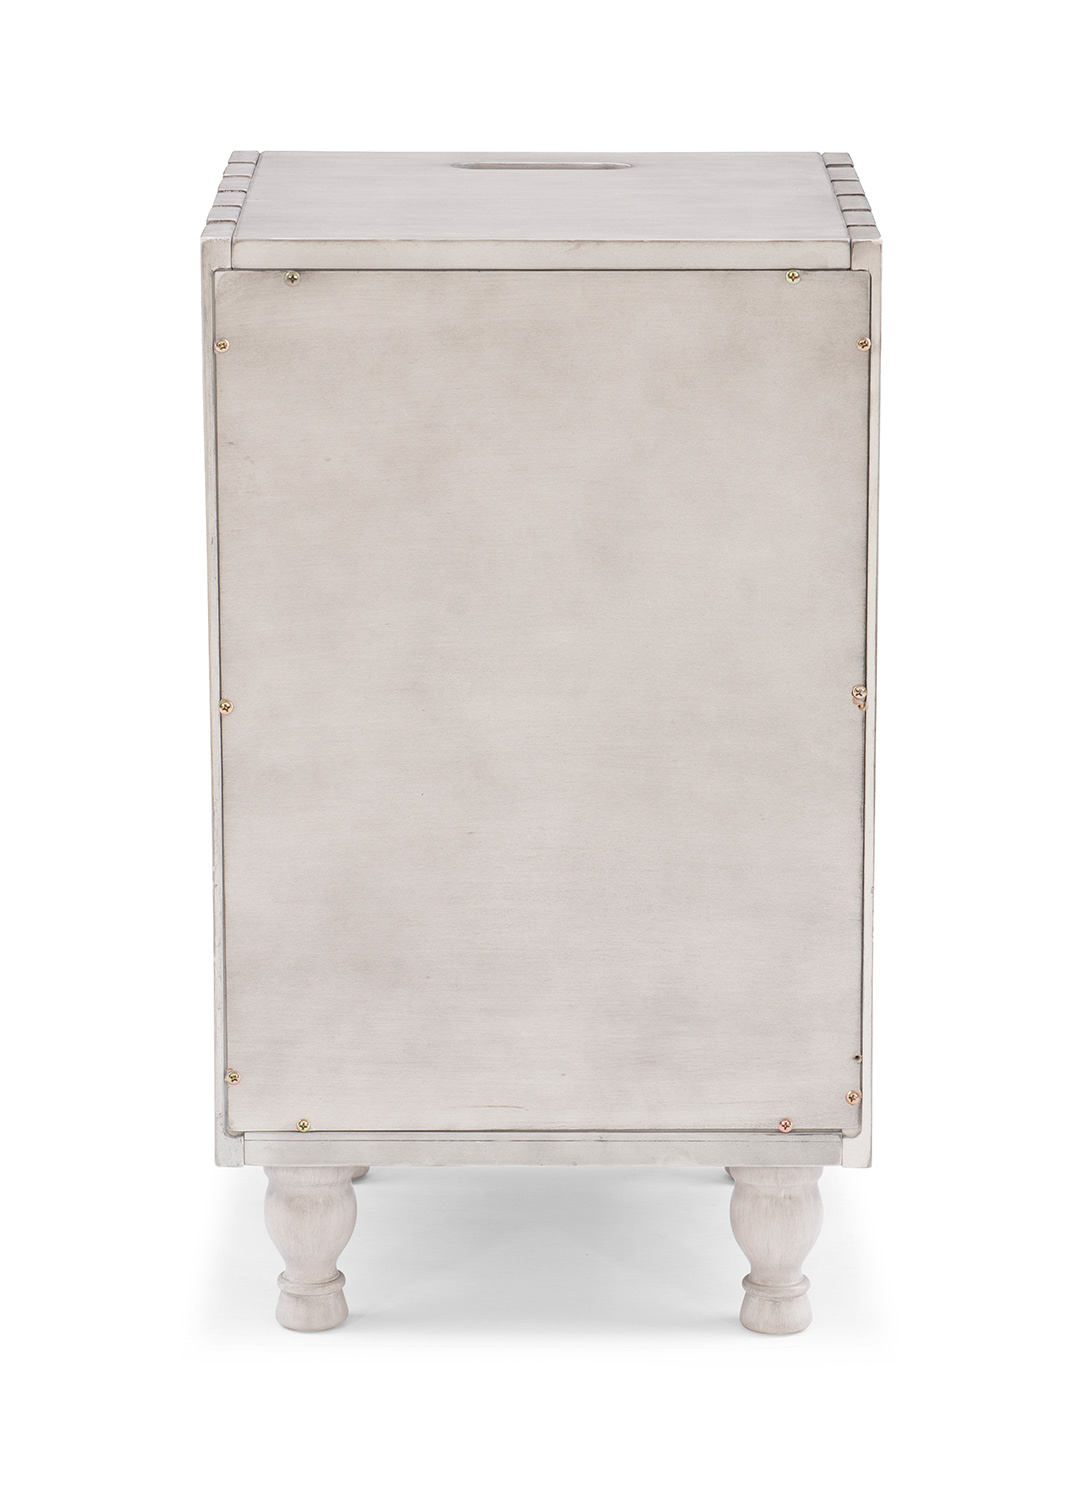 Powell Royer Table - White